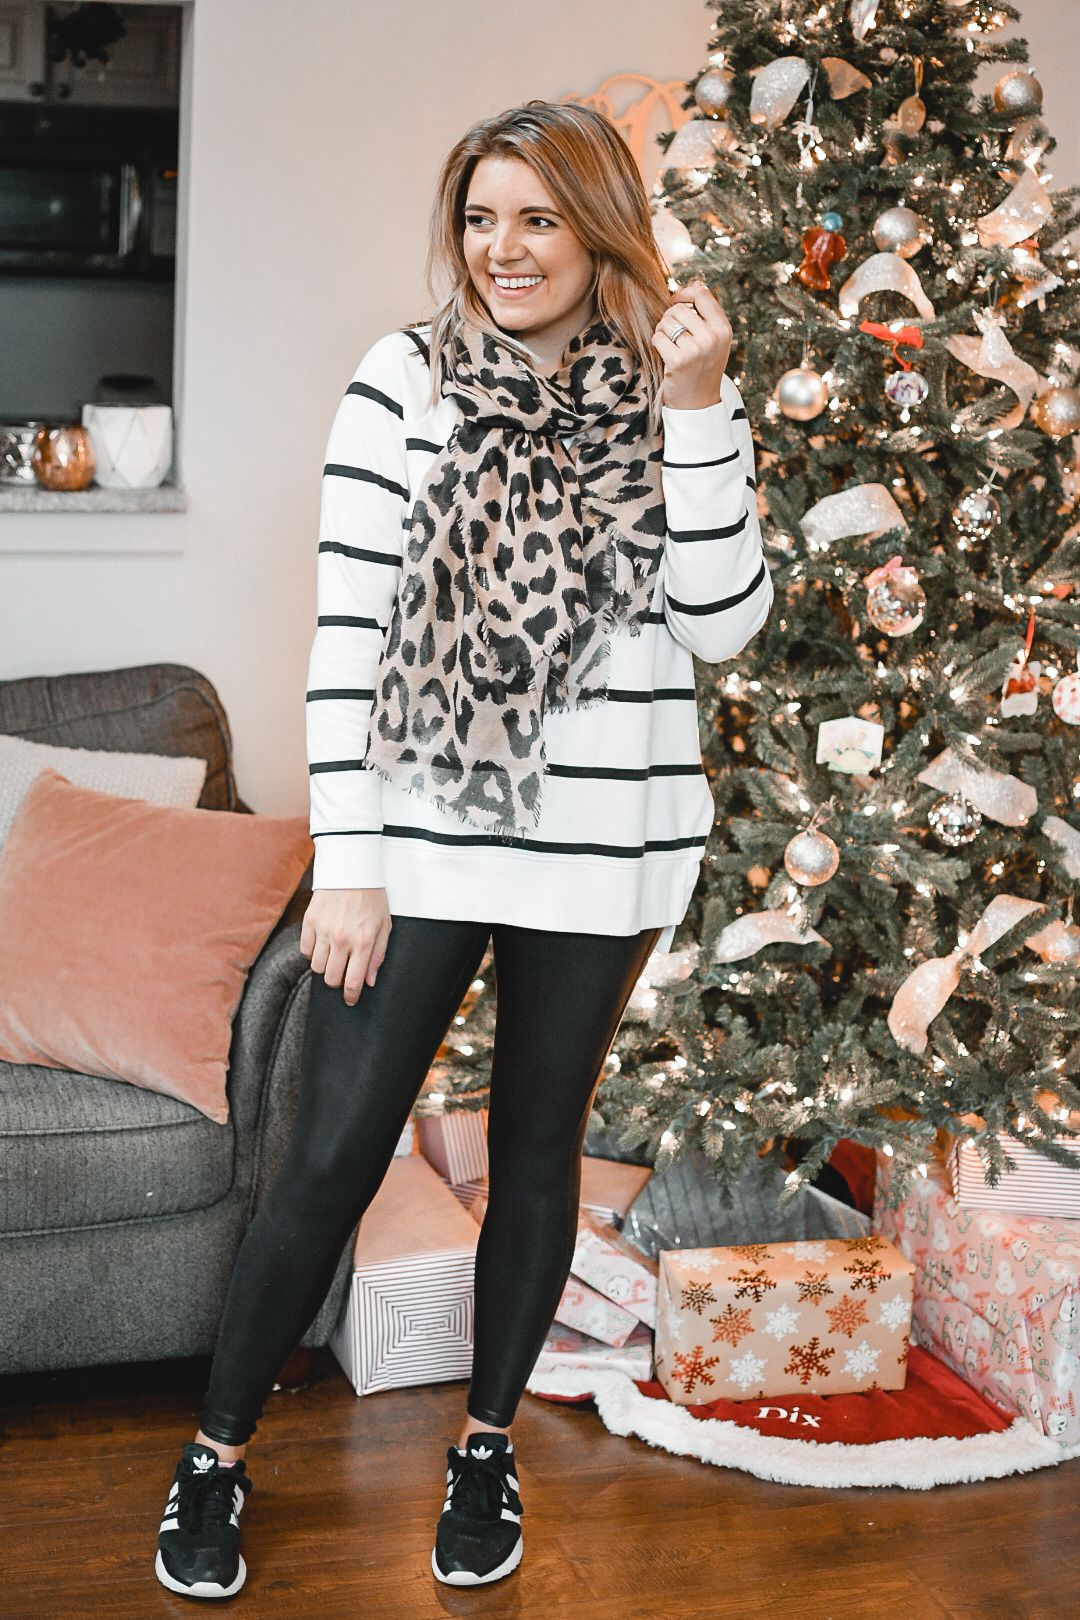 Virginia blogger, Lauren Dix, shares eight Spanx faux leather leggings outfits for winter! From casual to dressy leggings outfits, see all the winter leggings outfits here!